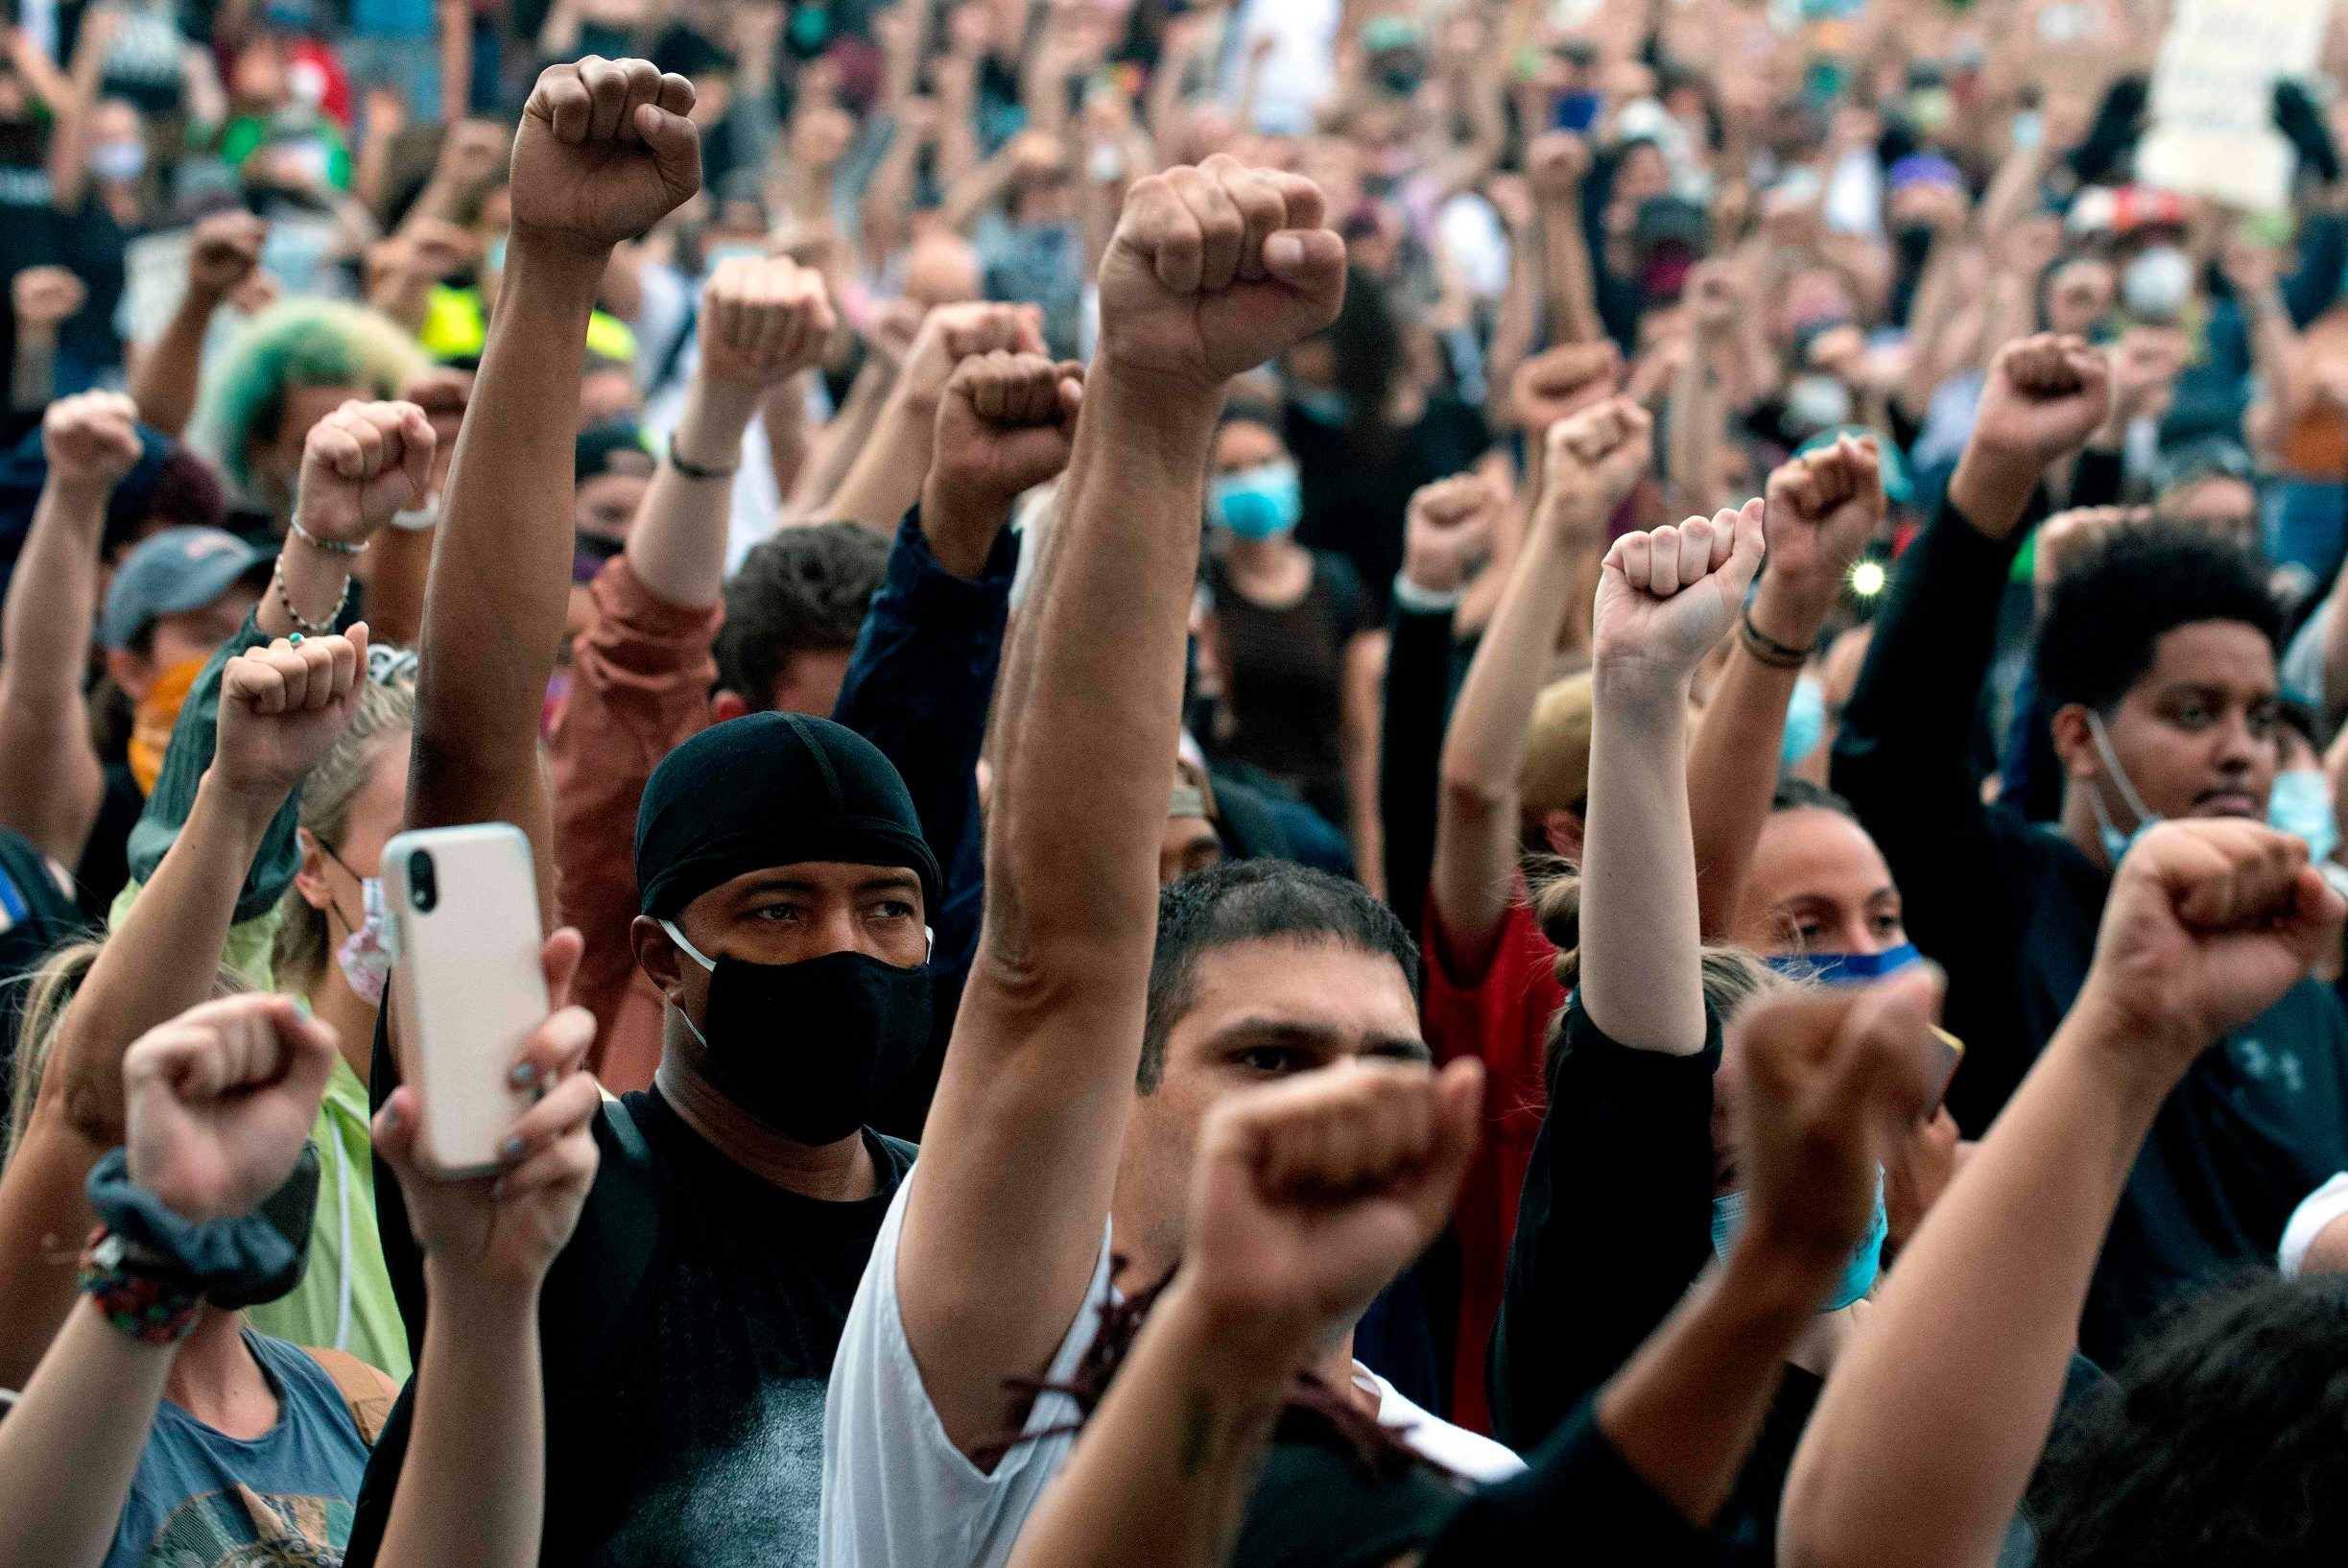 Demonstrators raise their fists in a sign of solidarity while protesting the death of George Floyd, an unarmed black man who died while while being arrested and pinned to the ground by the knee of a Minneapolis police officer, at the  Colorado State Capital in Denver, Colorado on June 3, 2020. - US protesters welcomed new charges brought Wednesday against Minneapolis officers in the killing of African American man George Floyd -- but thousands still marched in cities across the country for a ninth straight night, chanting against racism and police brutality. (Photo by Jason Connolly / AFP)